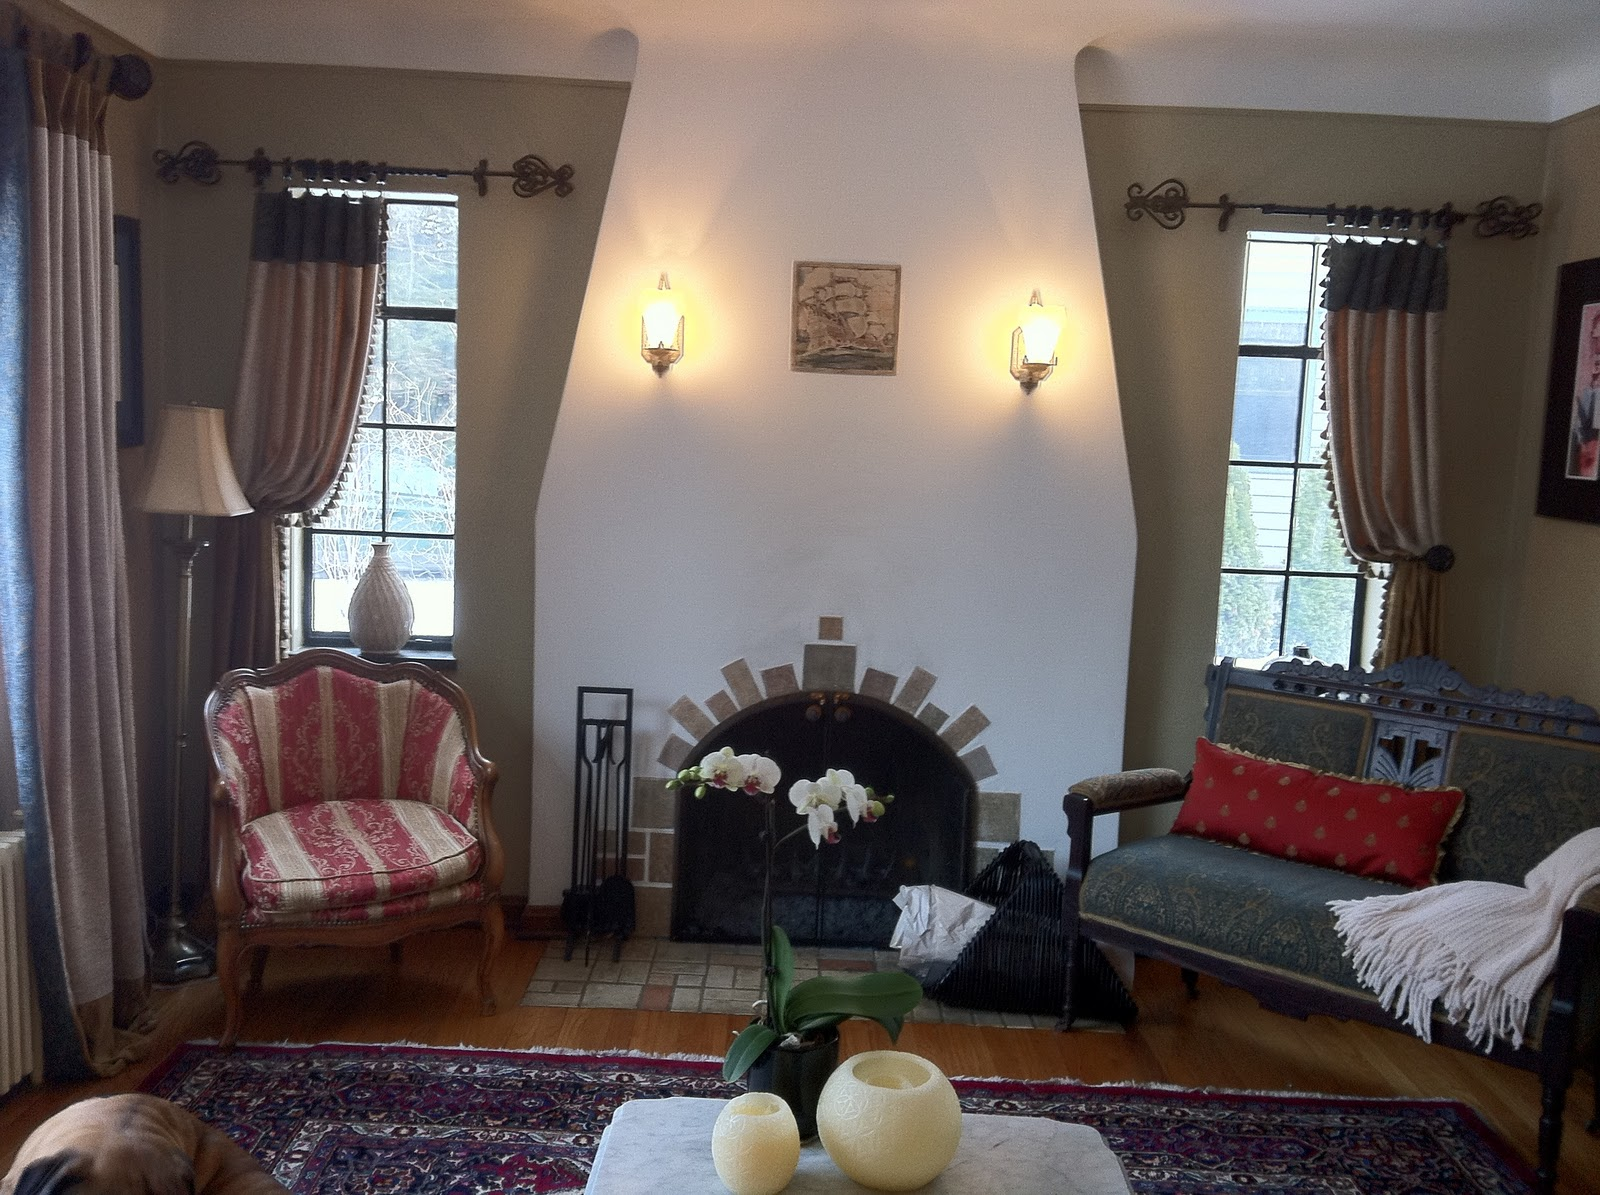 doe hill chat rooms Browse photos and listings for the 0 for sale by owner (fsbo) listings in doe hill va and get in touch with a seller after filtering down to the perfect home.